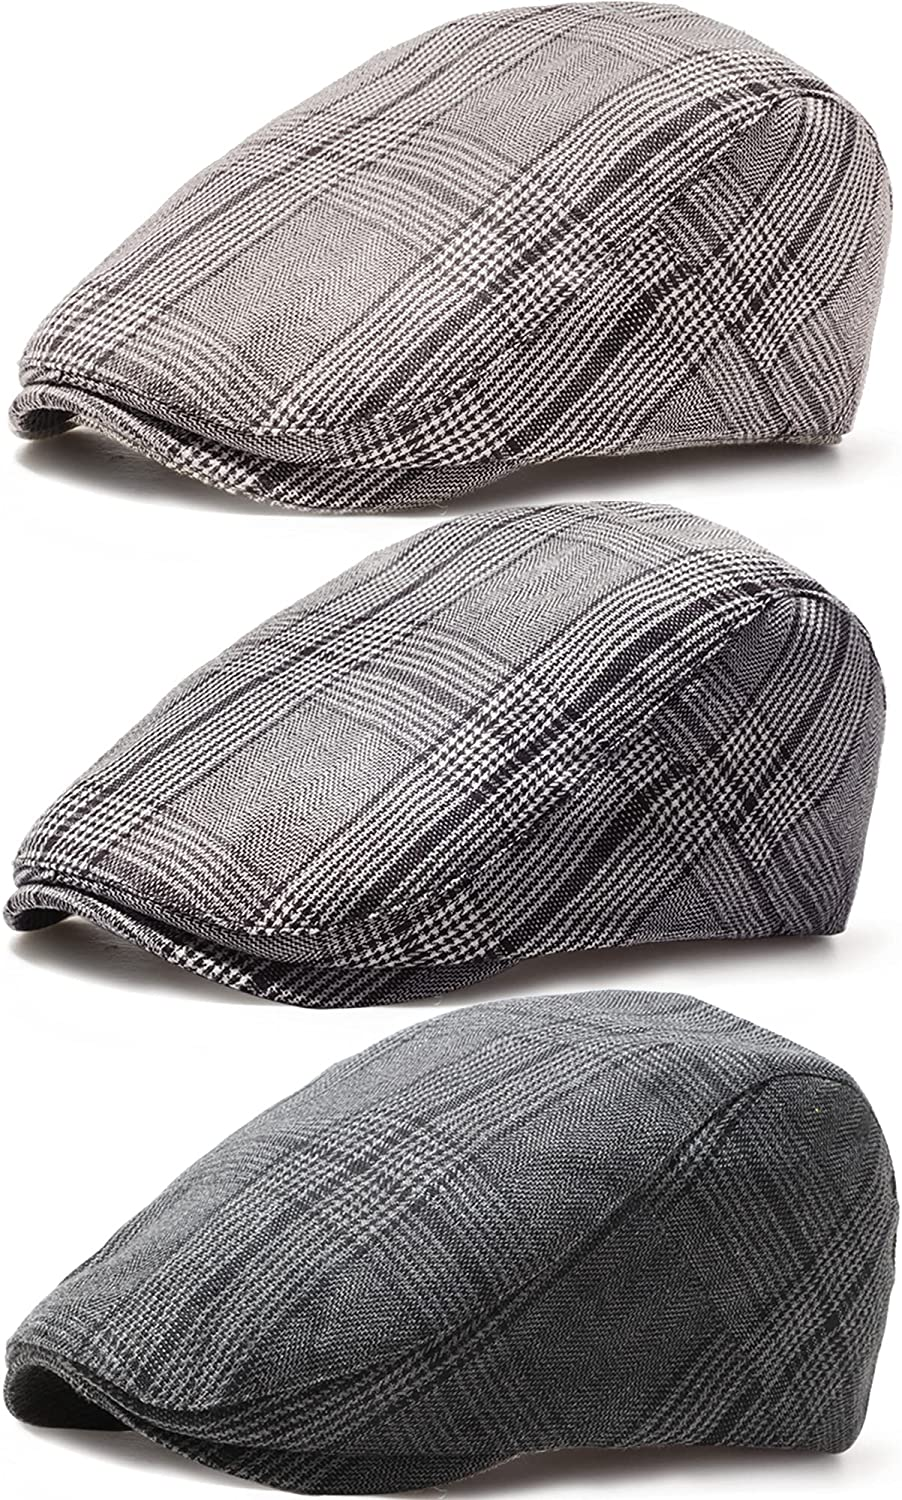 3 Pieces Cabbie Cap Flat Ivy Hat Newsboy Gatsby P Adjustable Challenge the wholesale lowest price of Japan